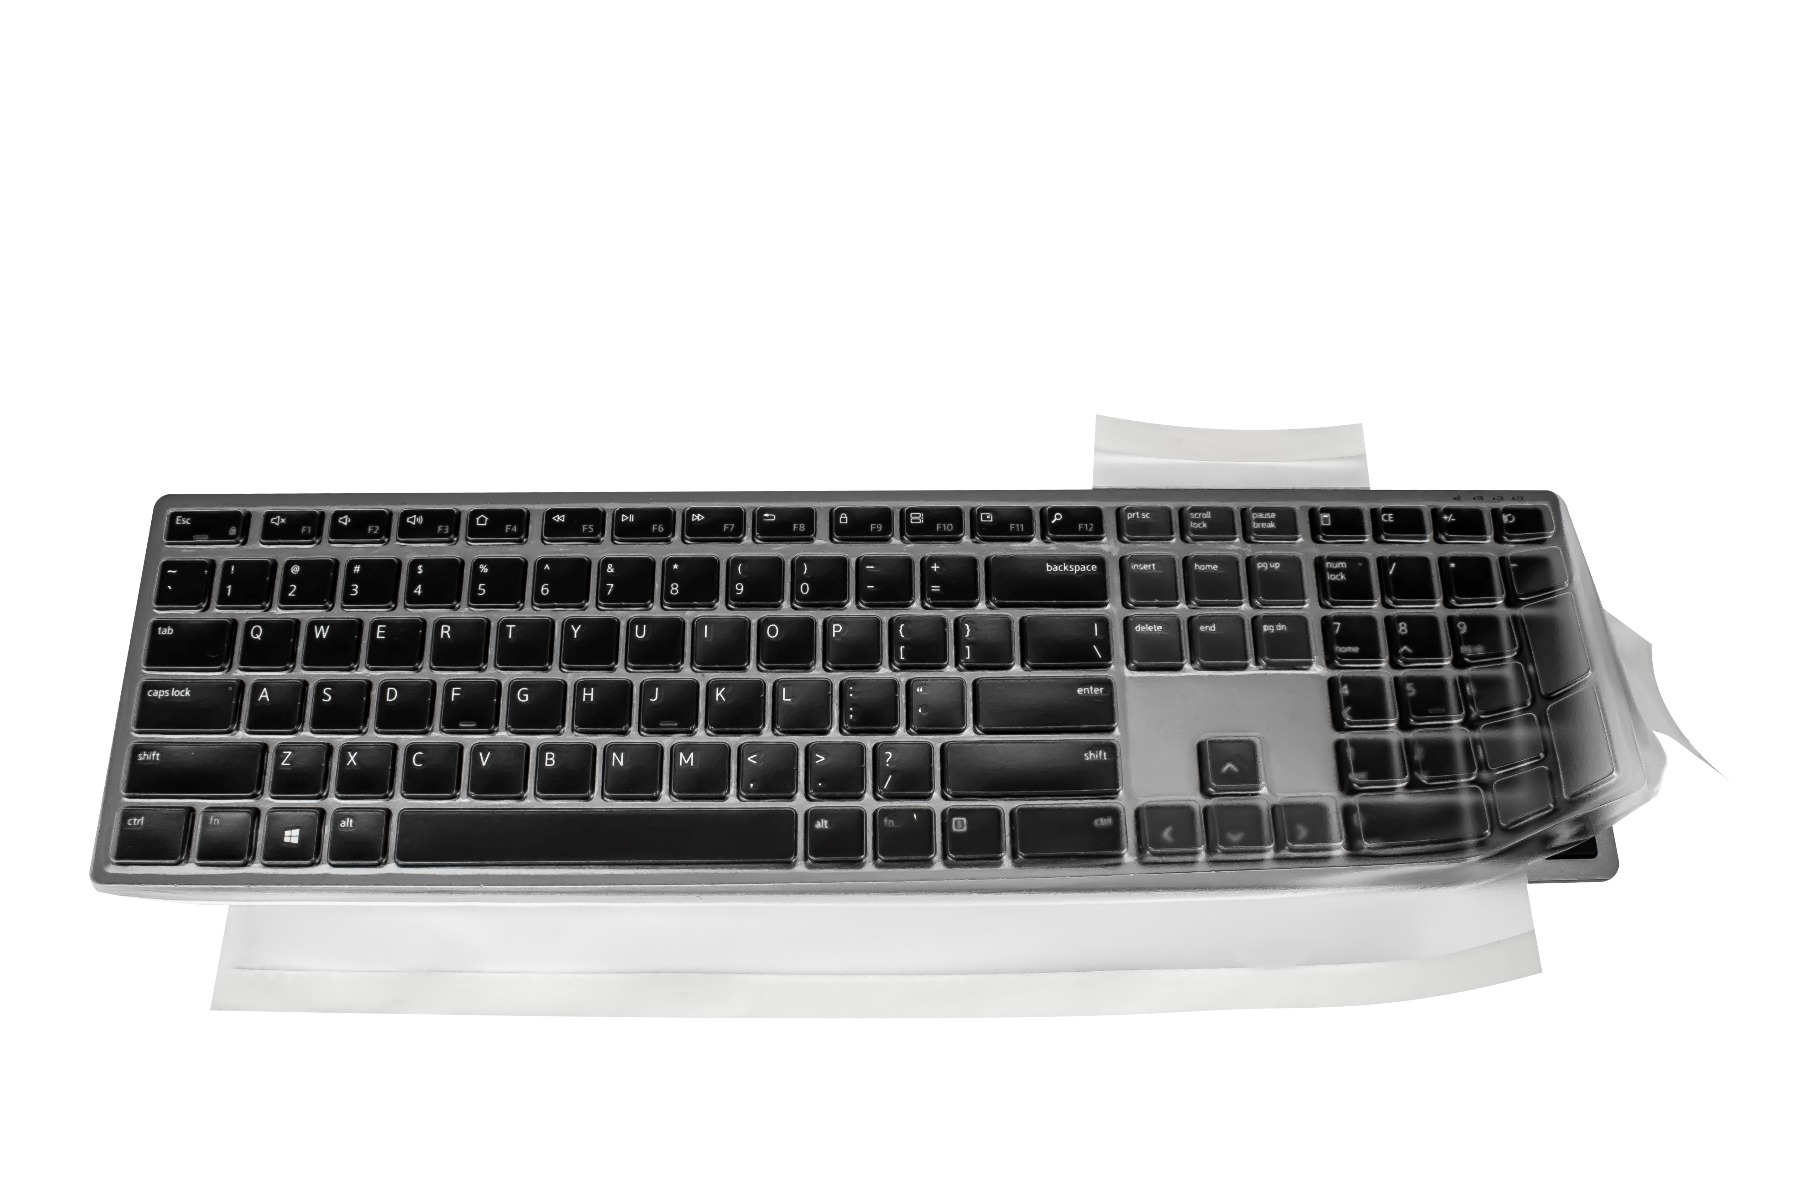 Dell Premier KM7321W / KM7321WGY-US Keyboard and Mouse Covers COMBO